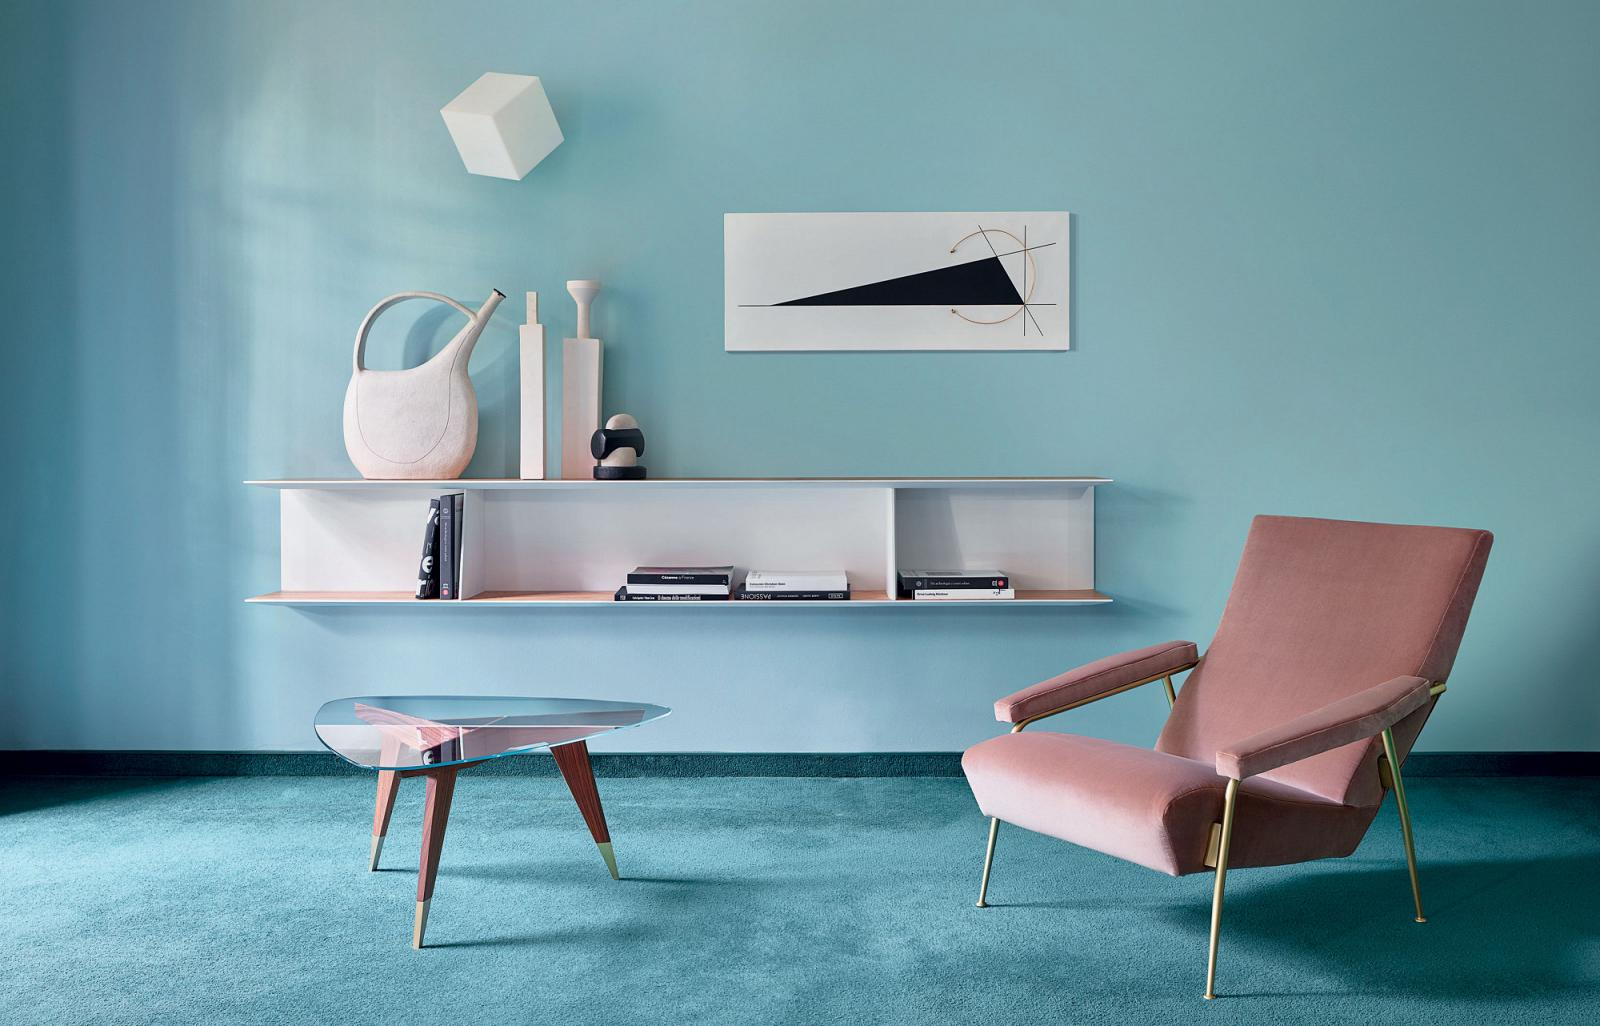 Staging of the D.655.1 buffet and the D.153.1 chair by Gio Ponti, edited by Molteni&C